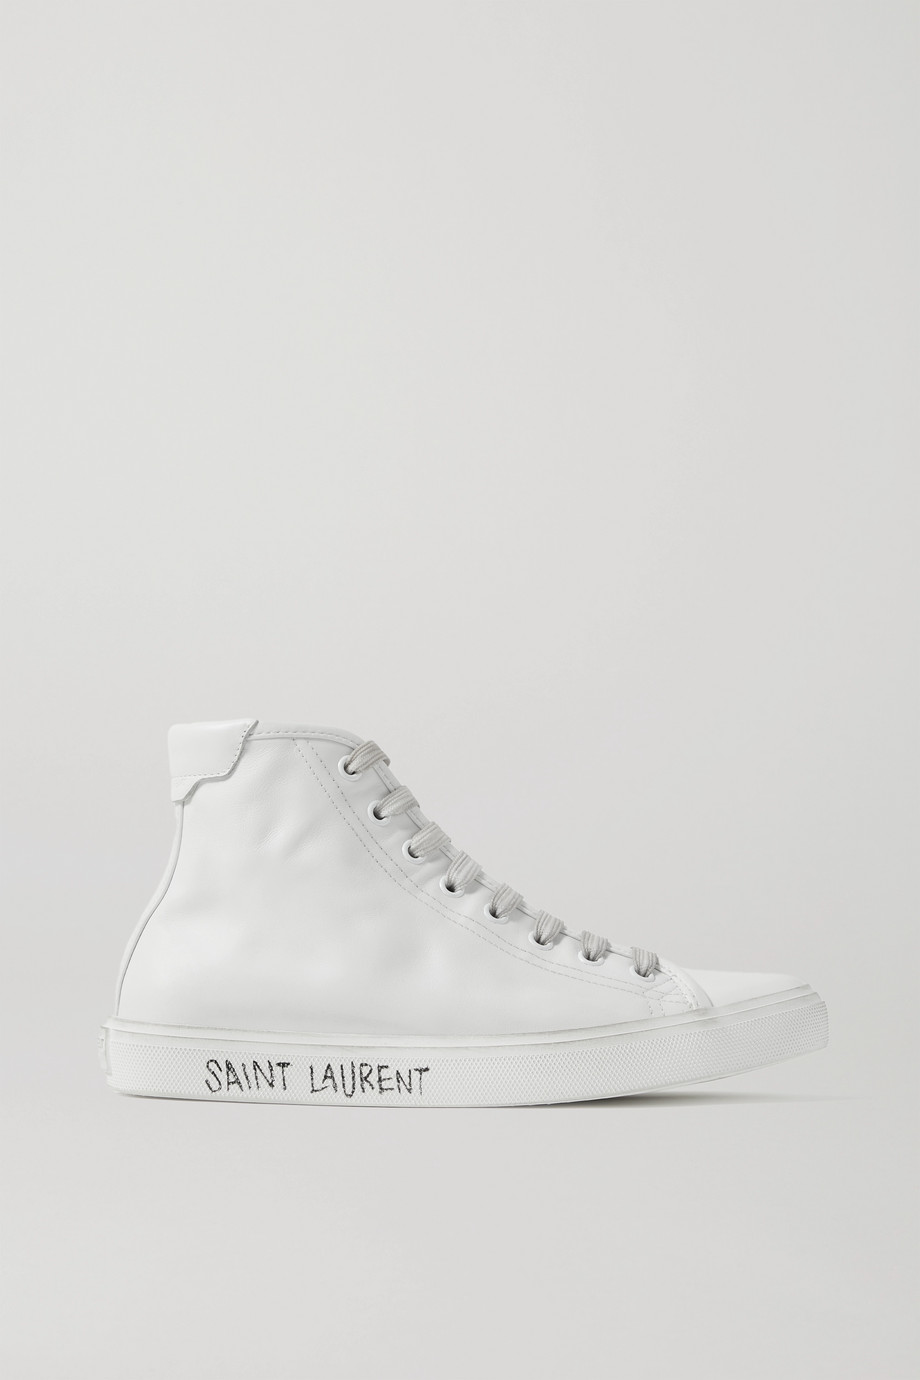 SAINT LAURENT Malibu distressed leather high-top sneakers